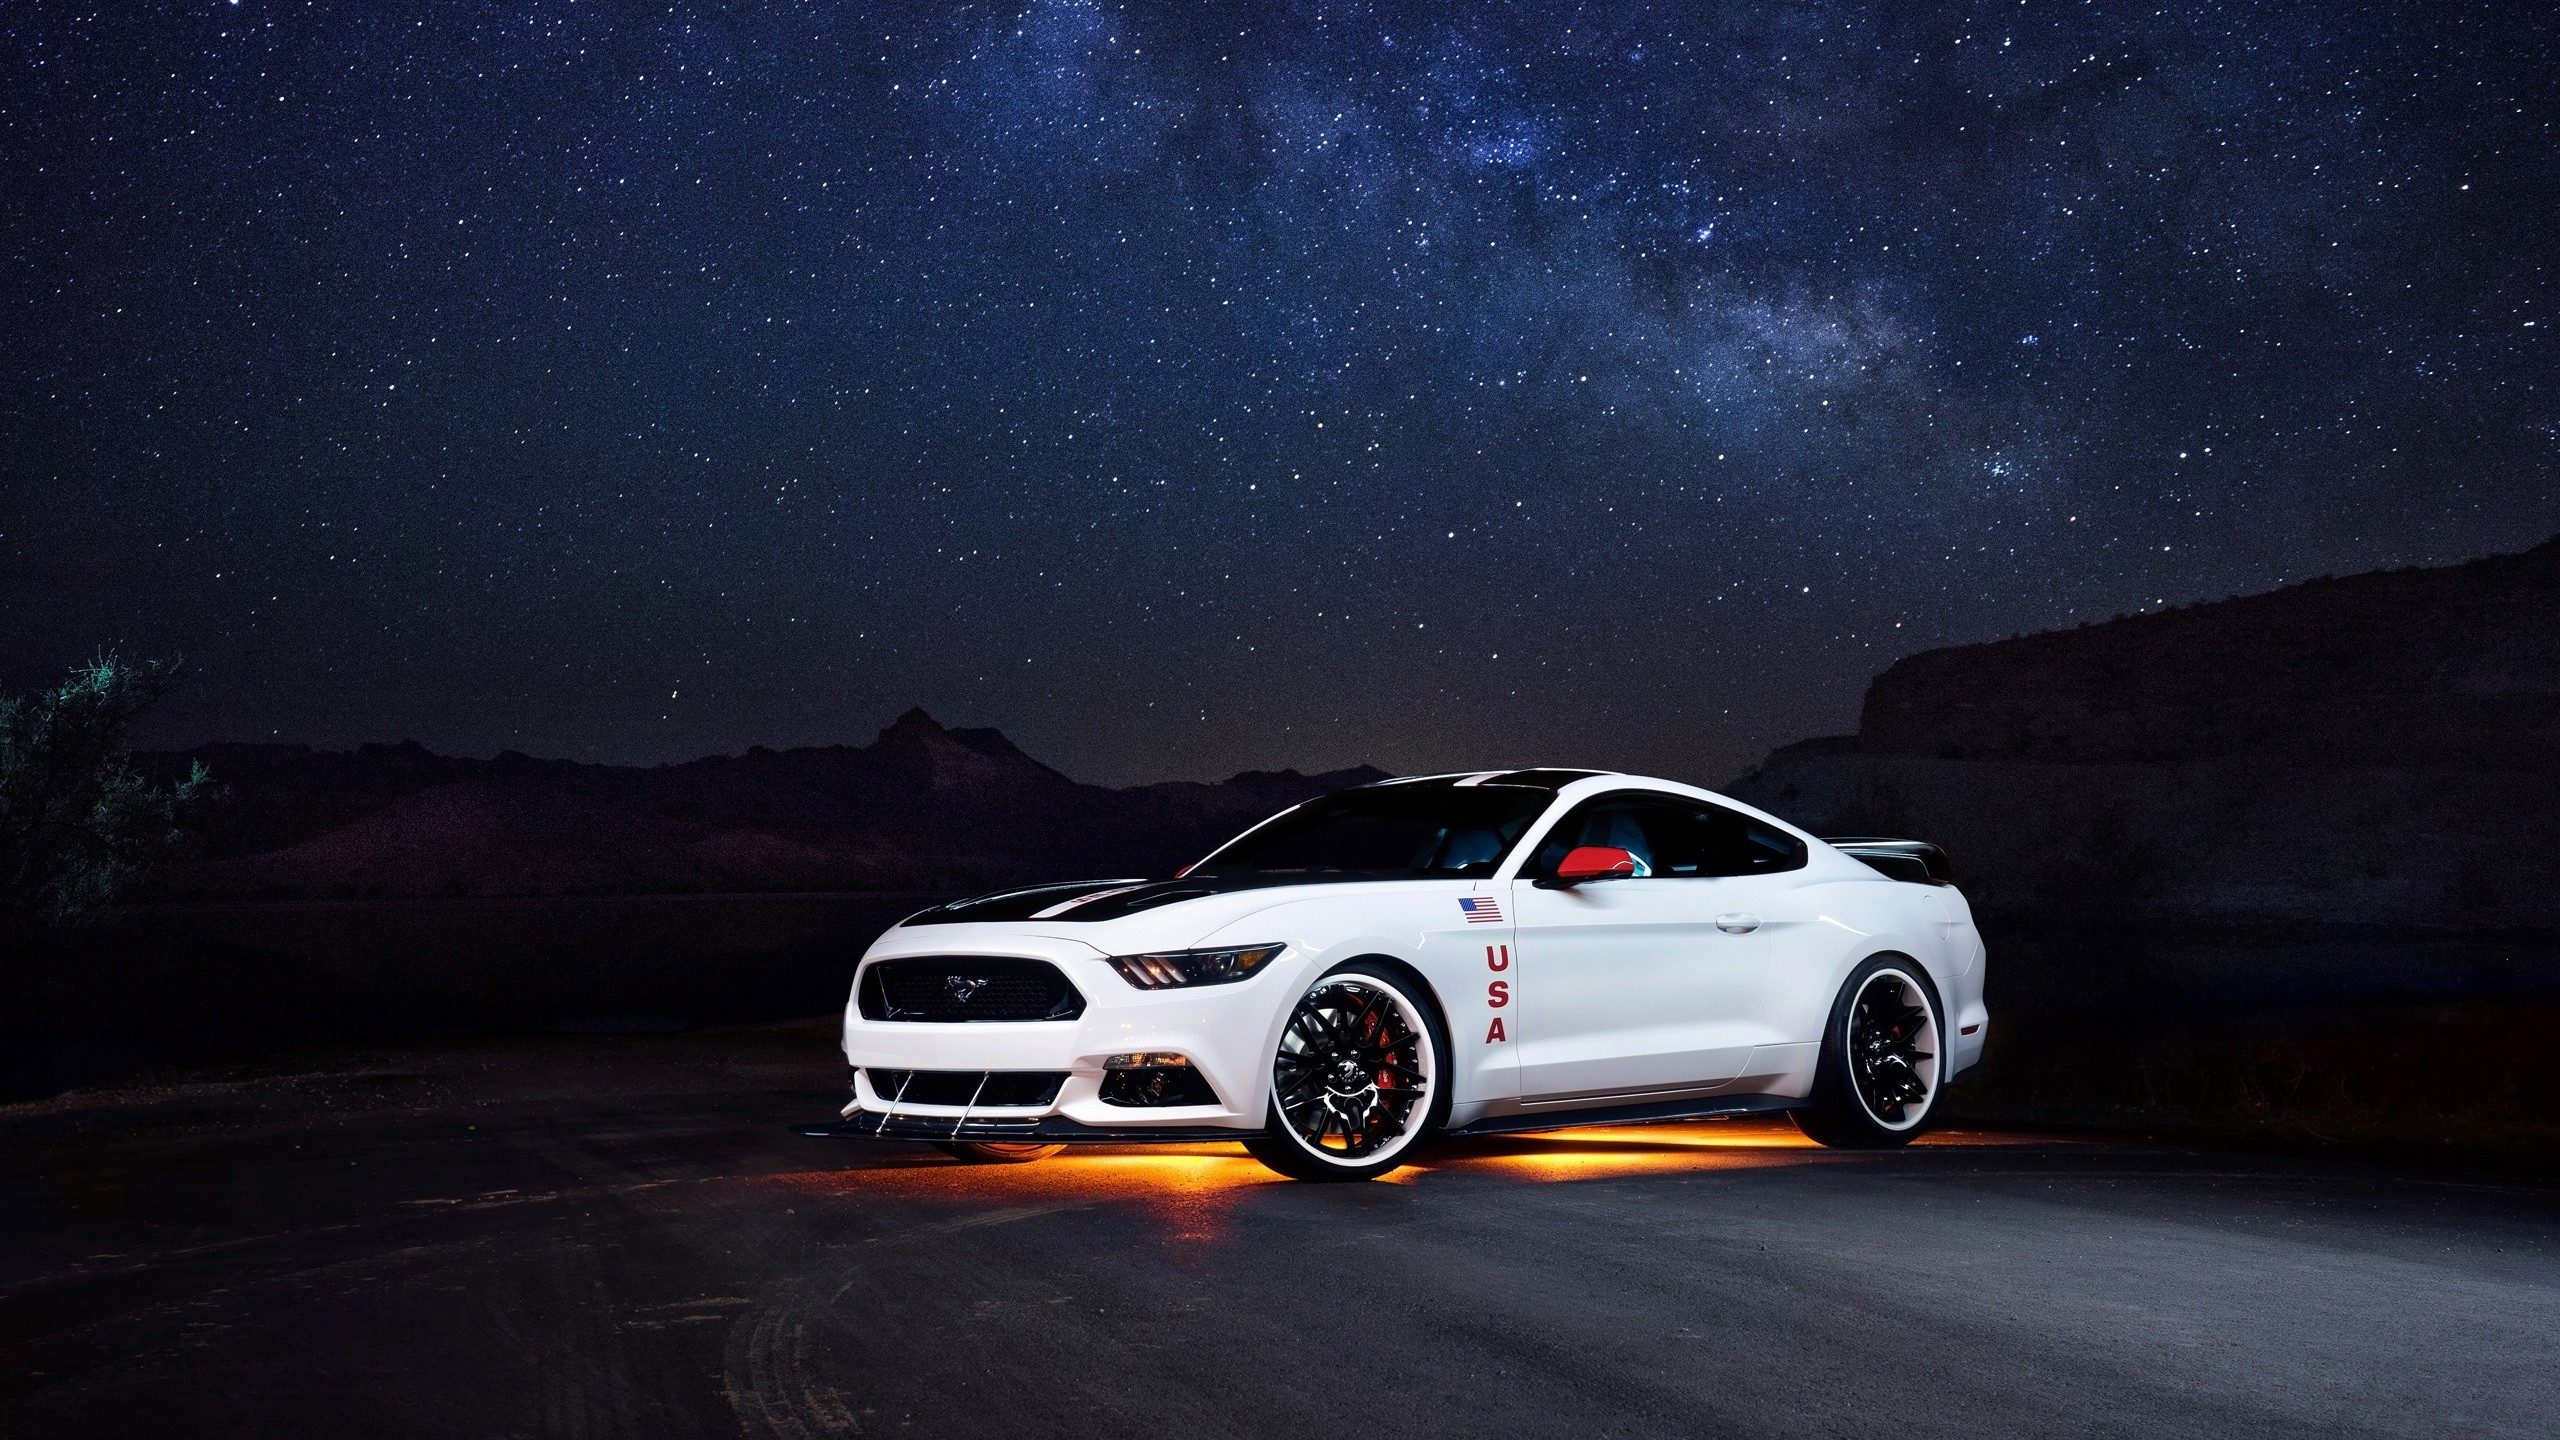 2015 ford mustang gt apollo edition 2 wallpaper hd car wallpapers id 5462 - Ford mustang wallpaper download ...